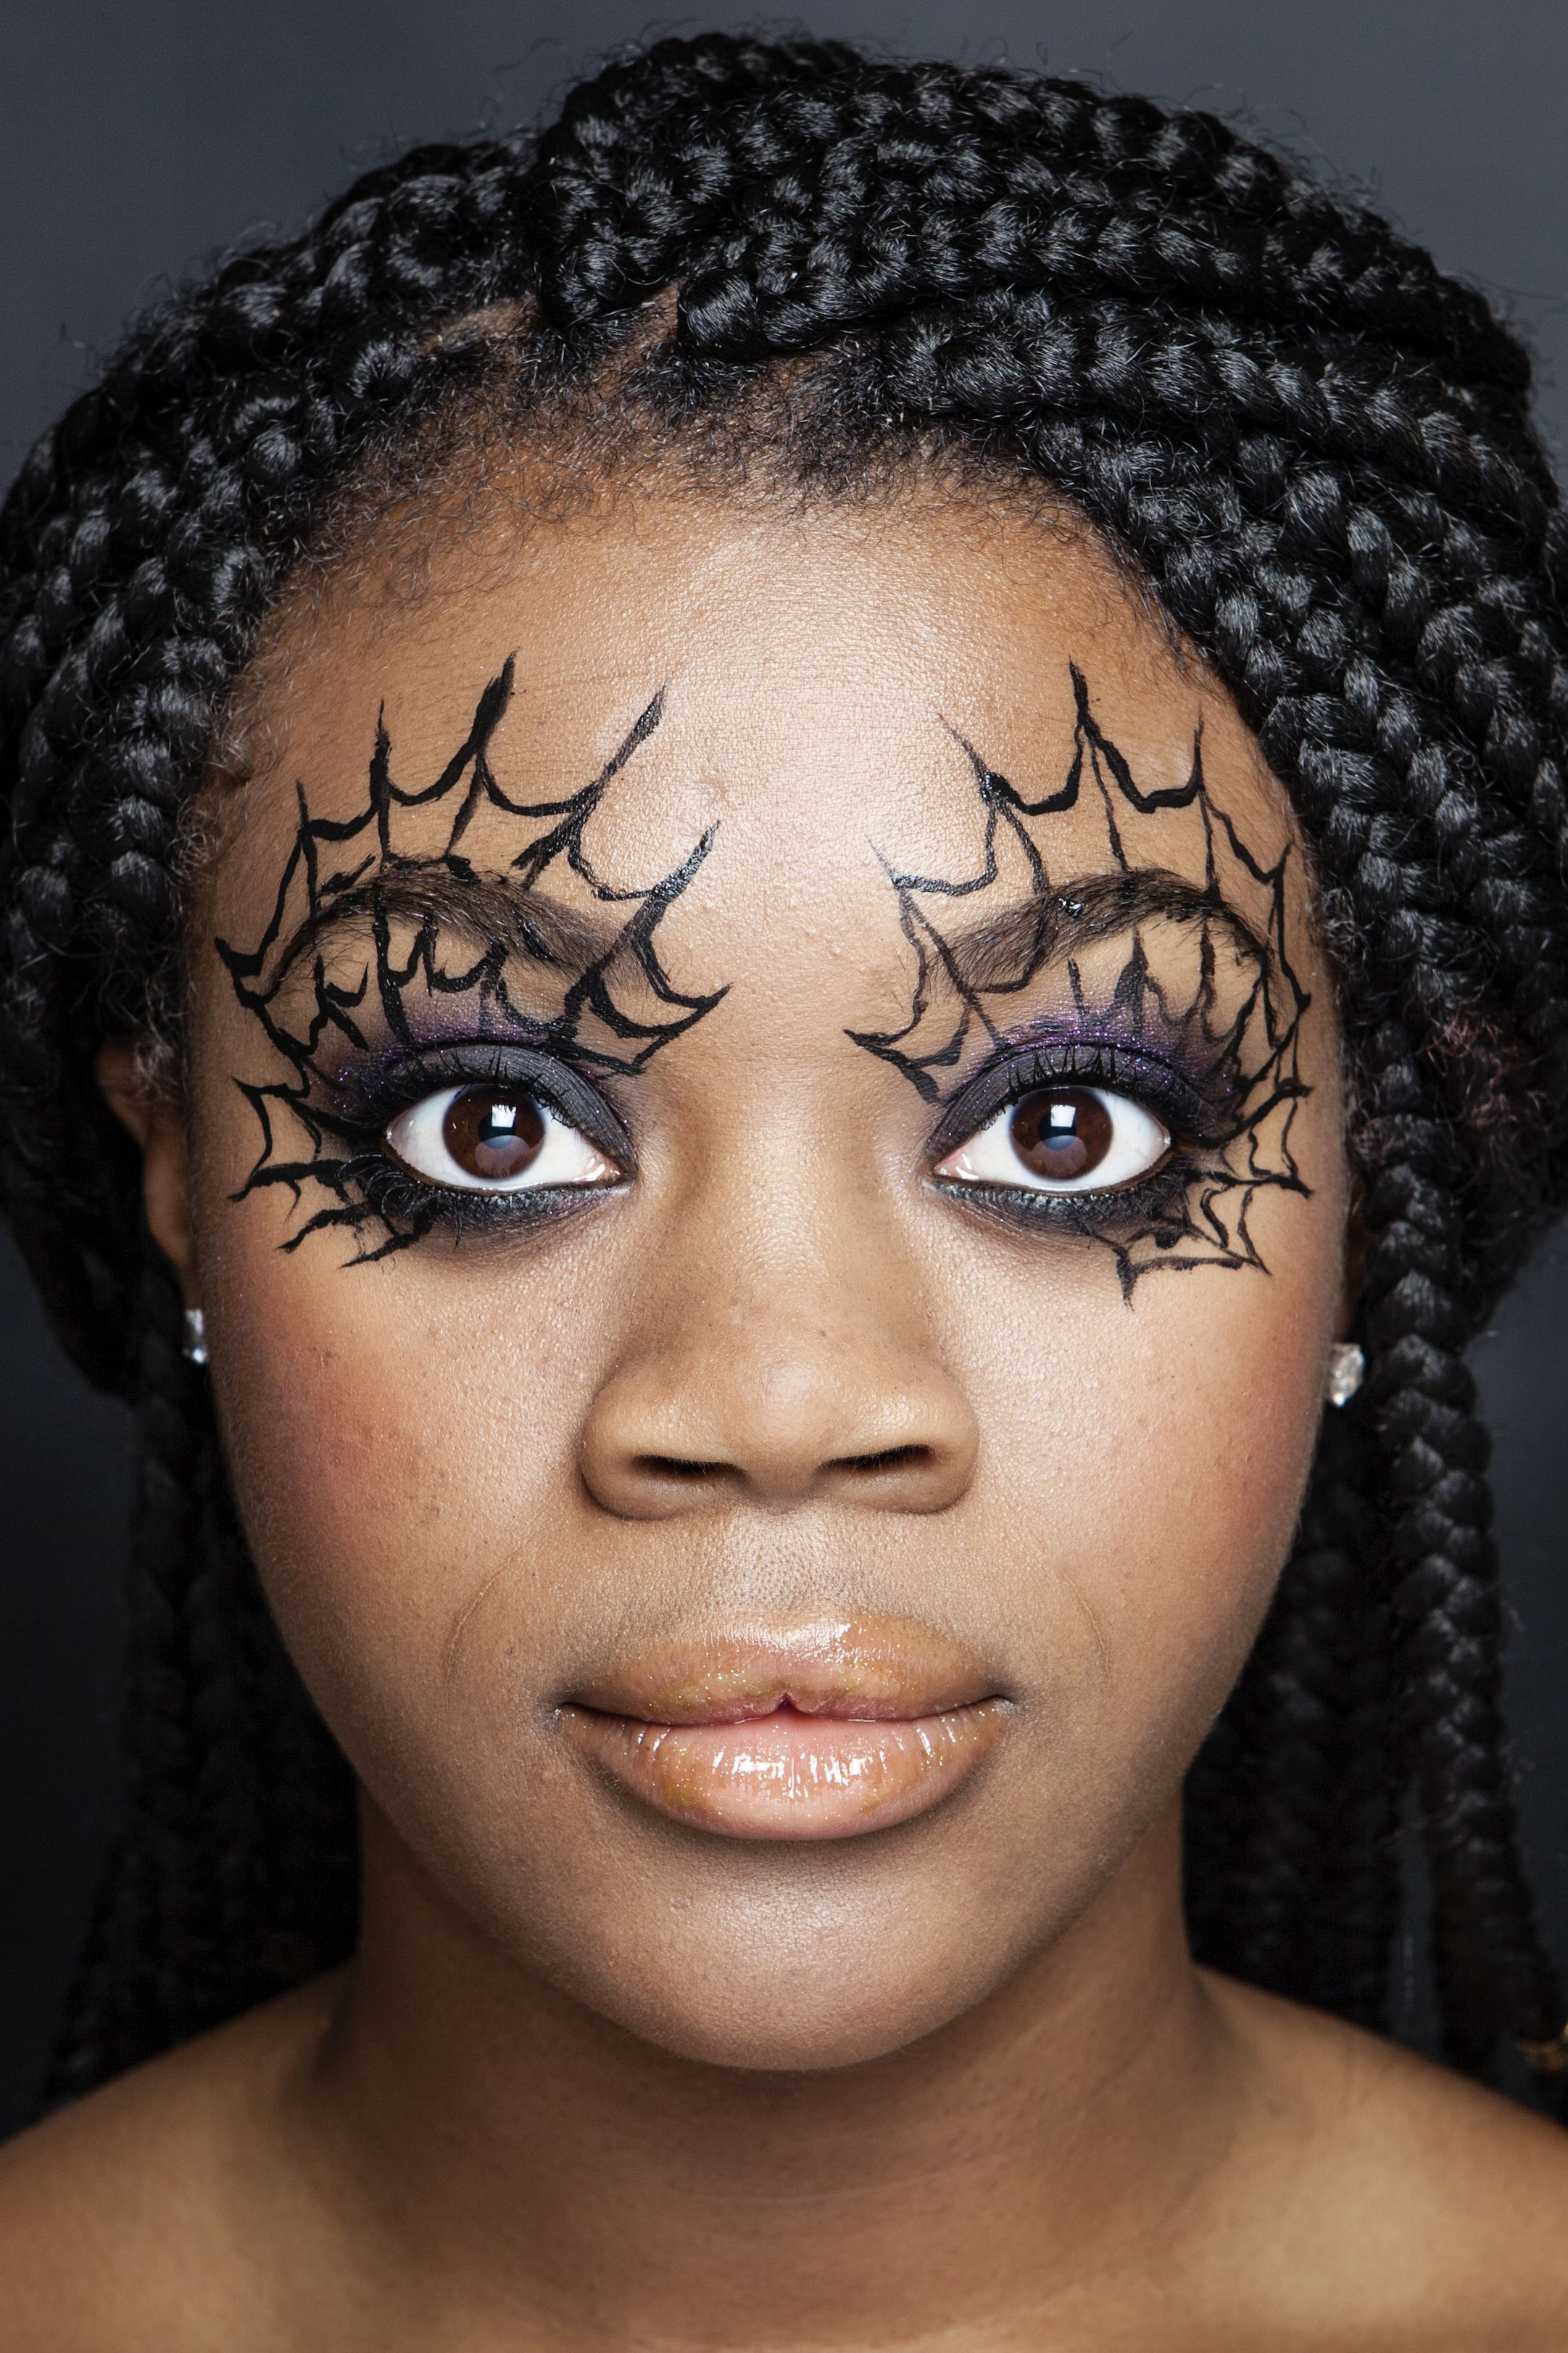 23 easy halloween face paint ideas - fun face painting for kids & adults